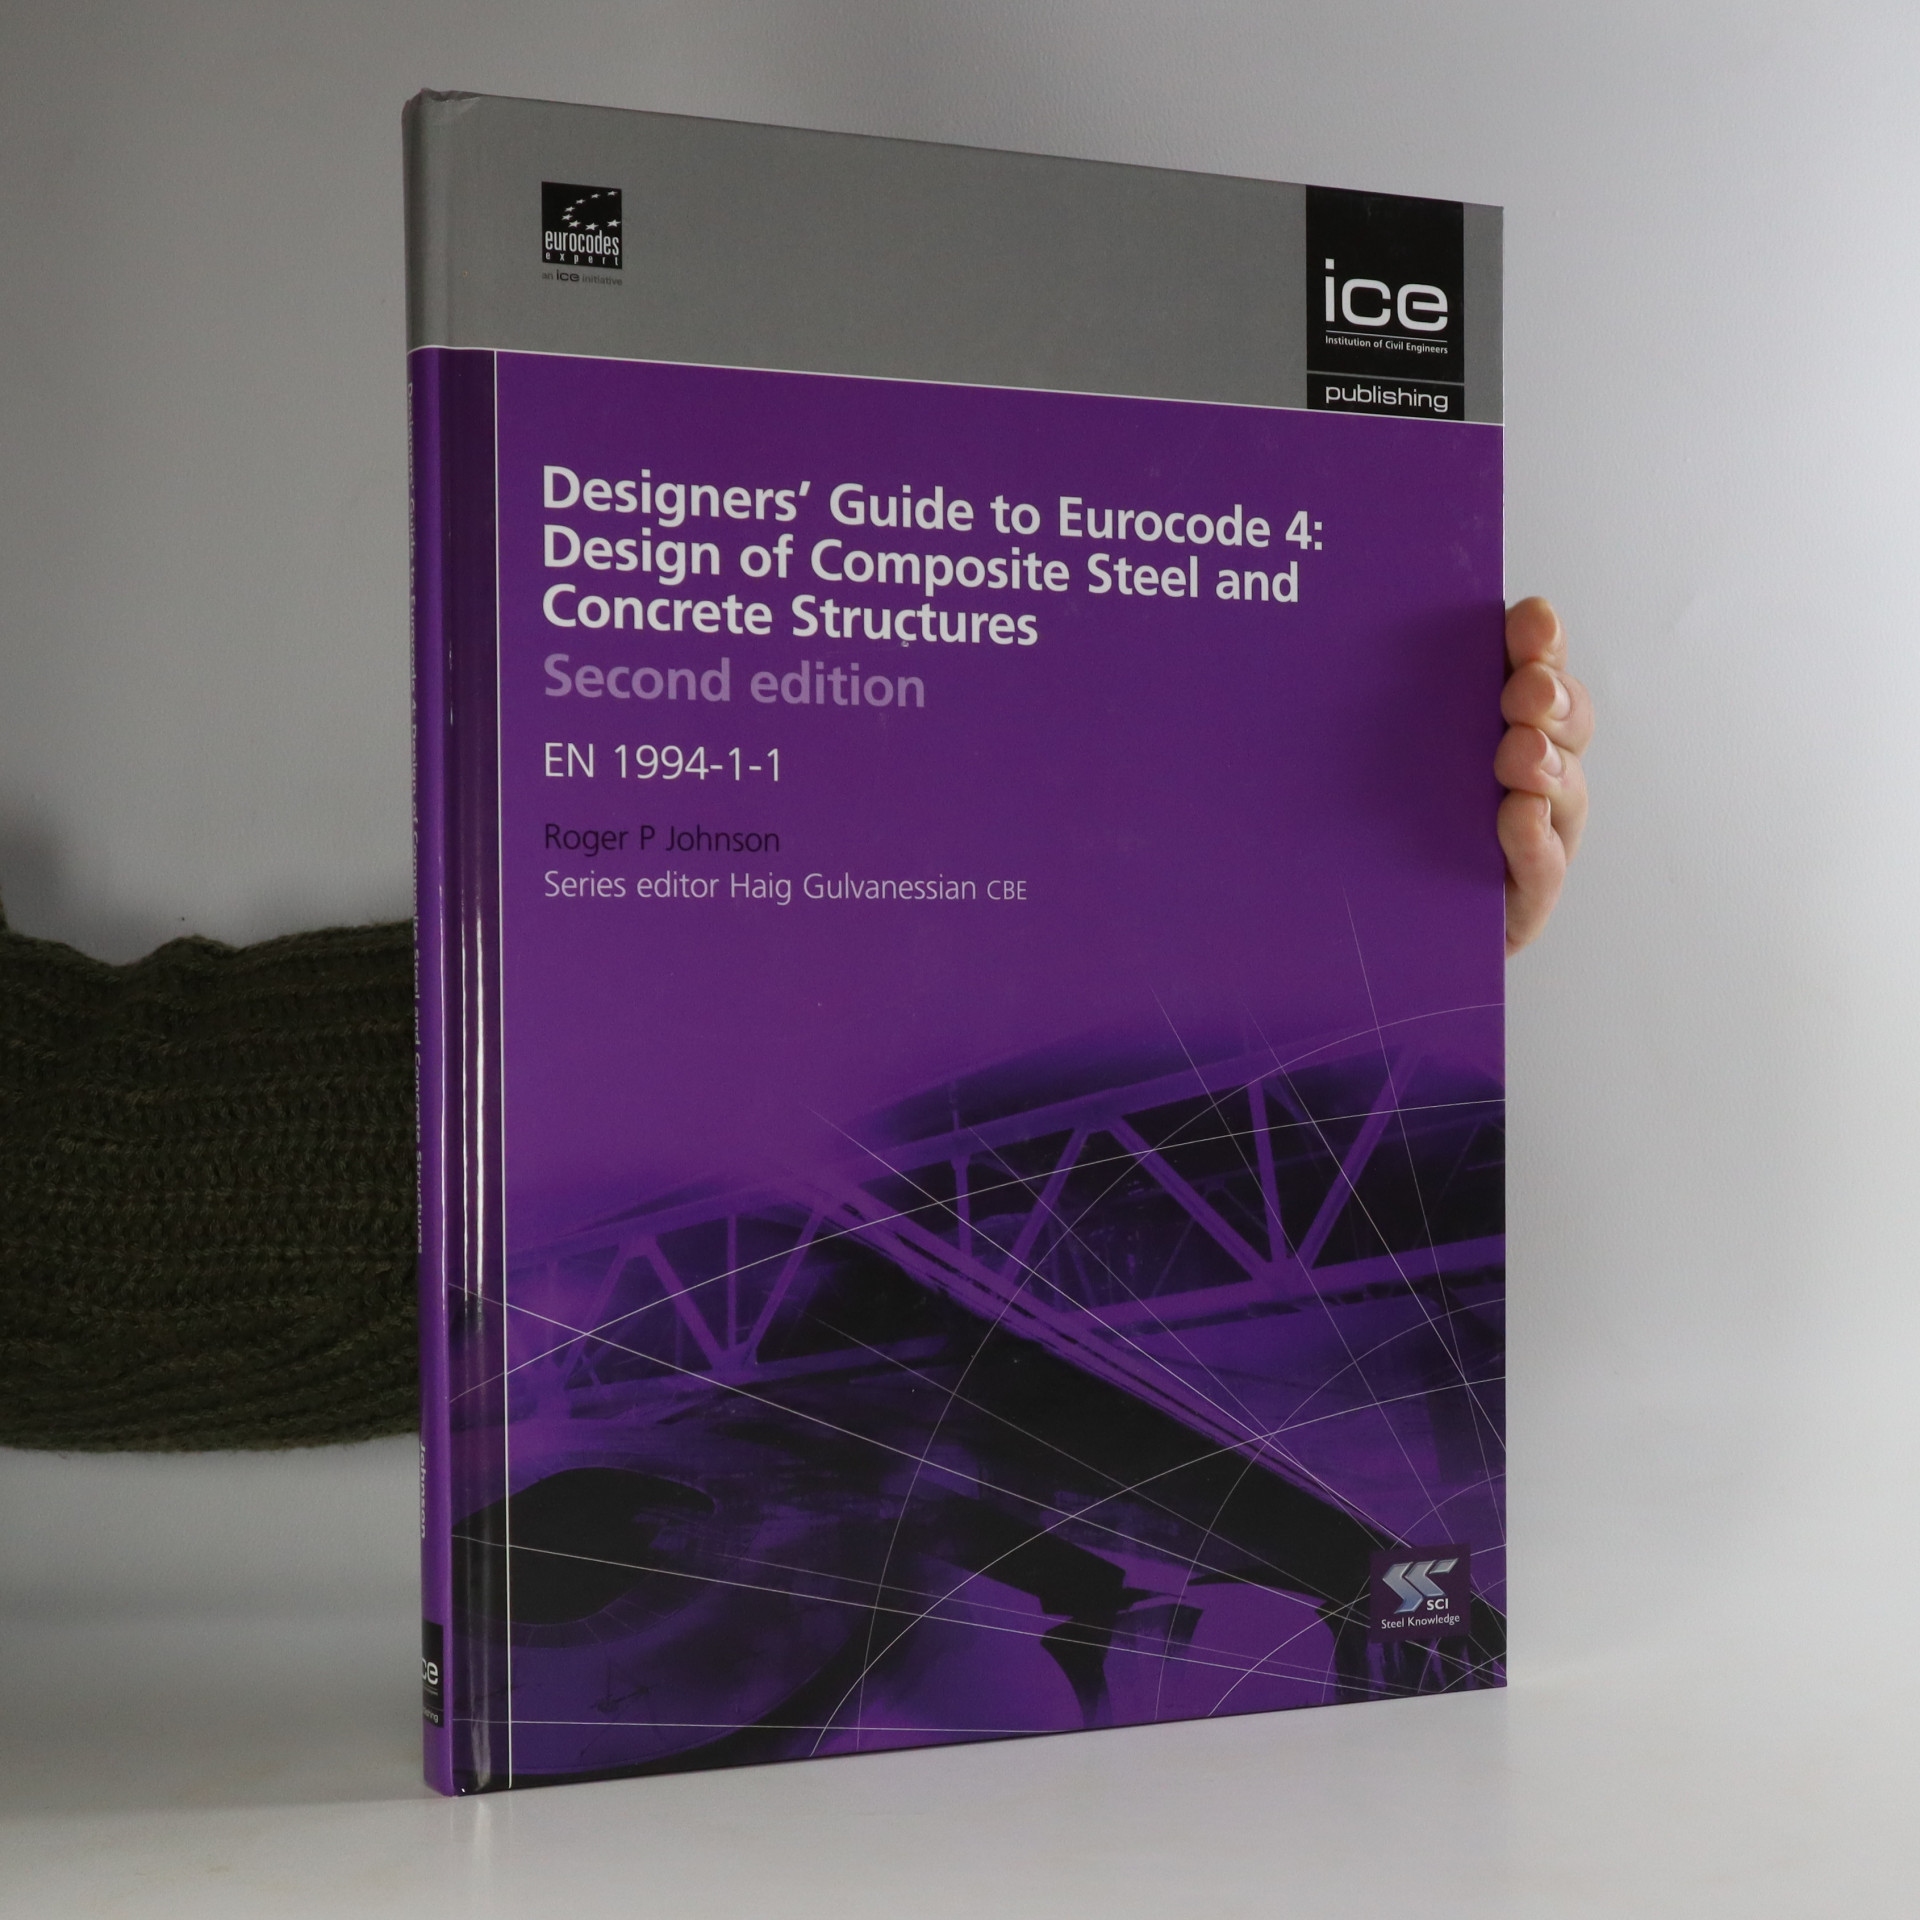 antikvární kniha Designers' Guide to Eurocode 4. Design of Composite Steel and Concrete Structures, neuveden